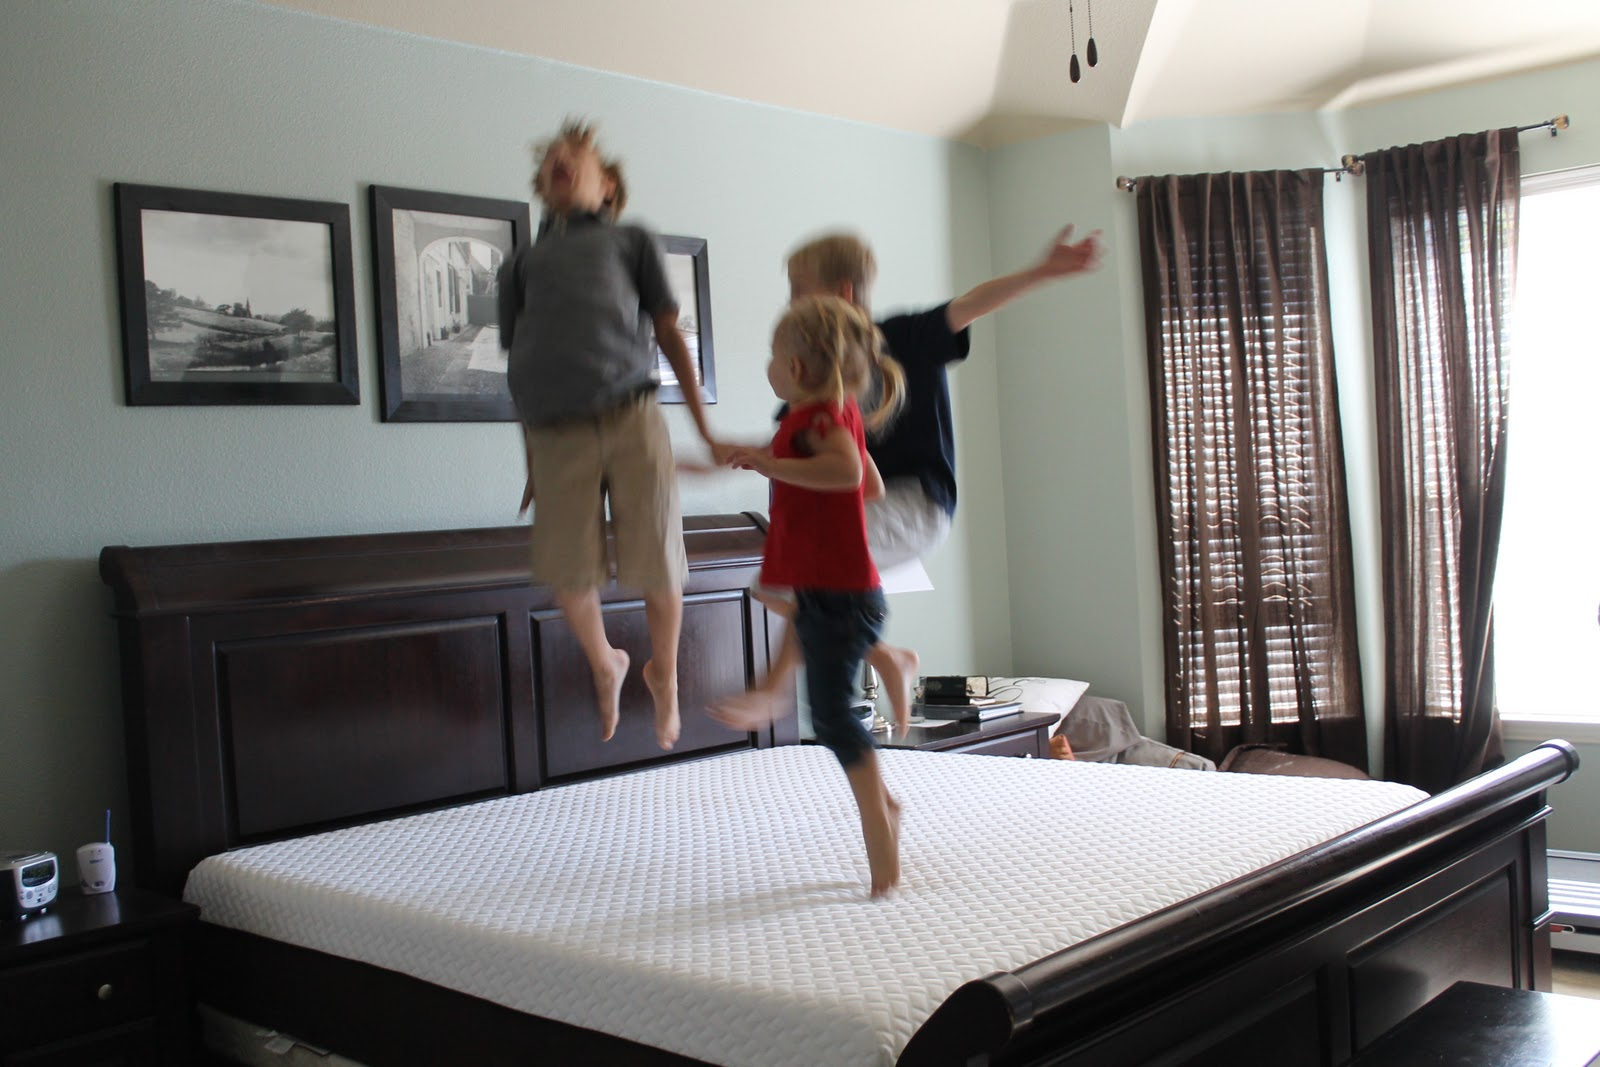 Our Family 3 little monkeys jumping on the bed